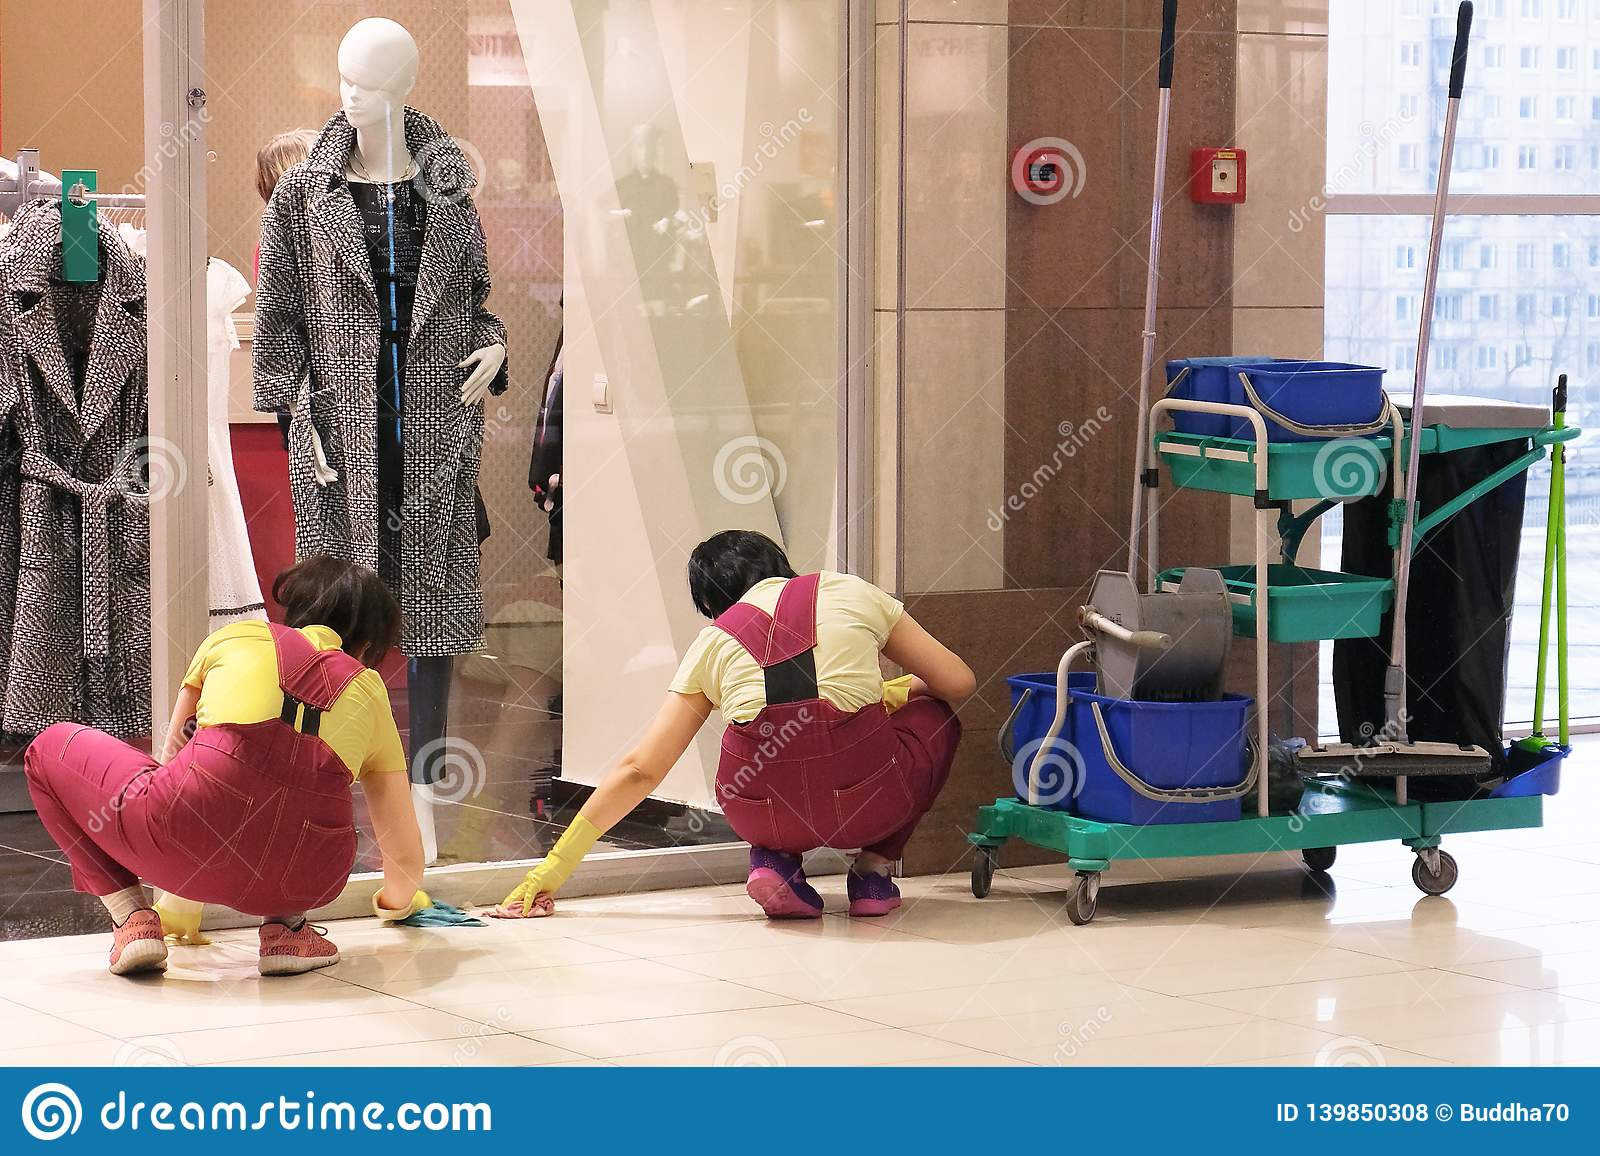 Image Of The Cleaners At The Mall Two Women Wipe Stains On The Floor Tools Nearby Stock Photo Image Of Department Hospital 139850308